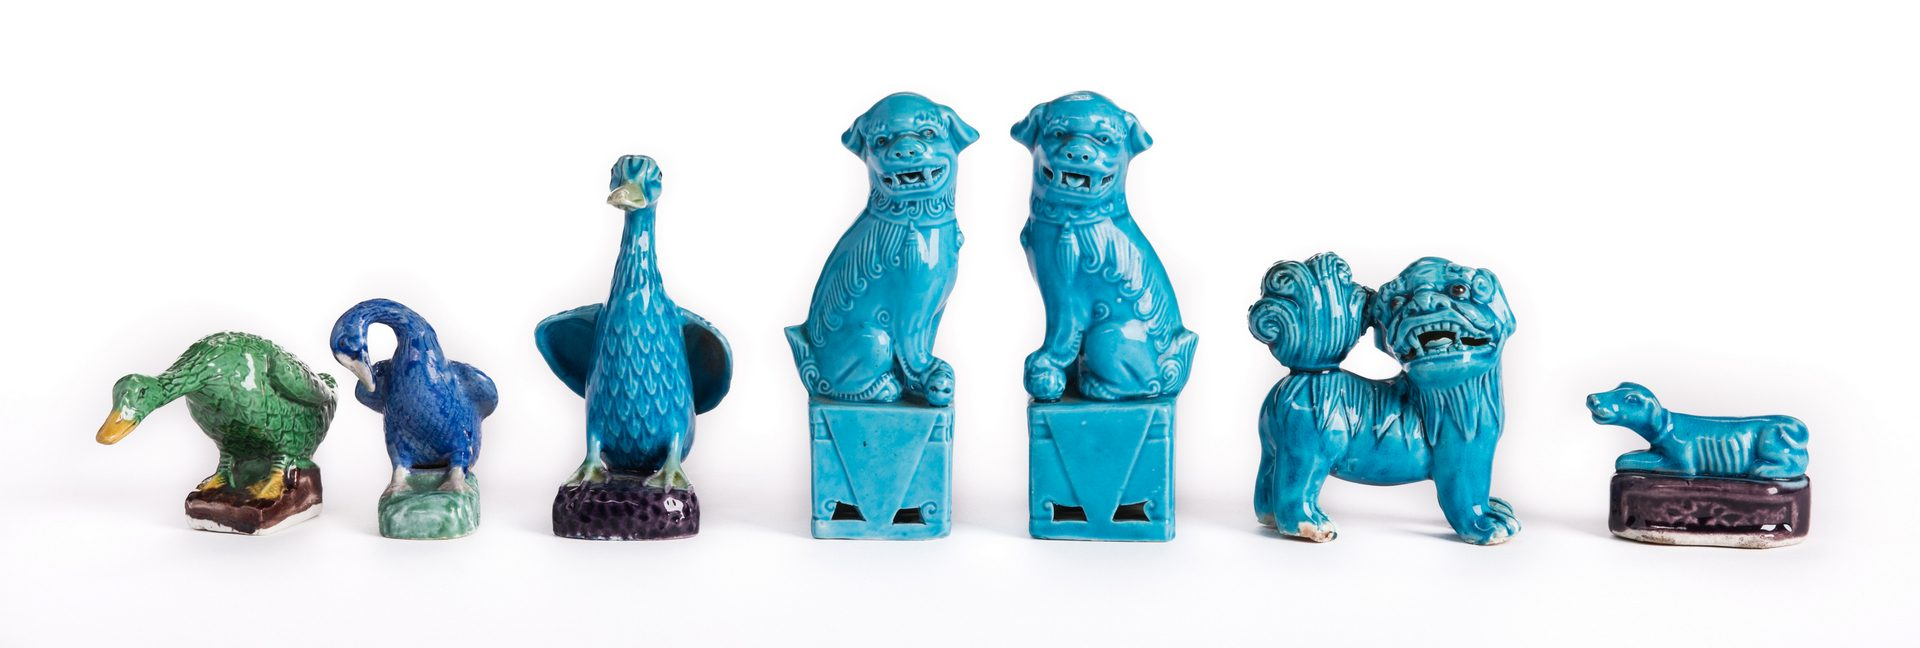 Lot 144: 13 Chinese Export Animal Figurals